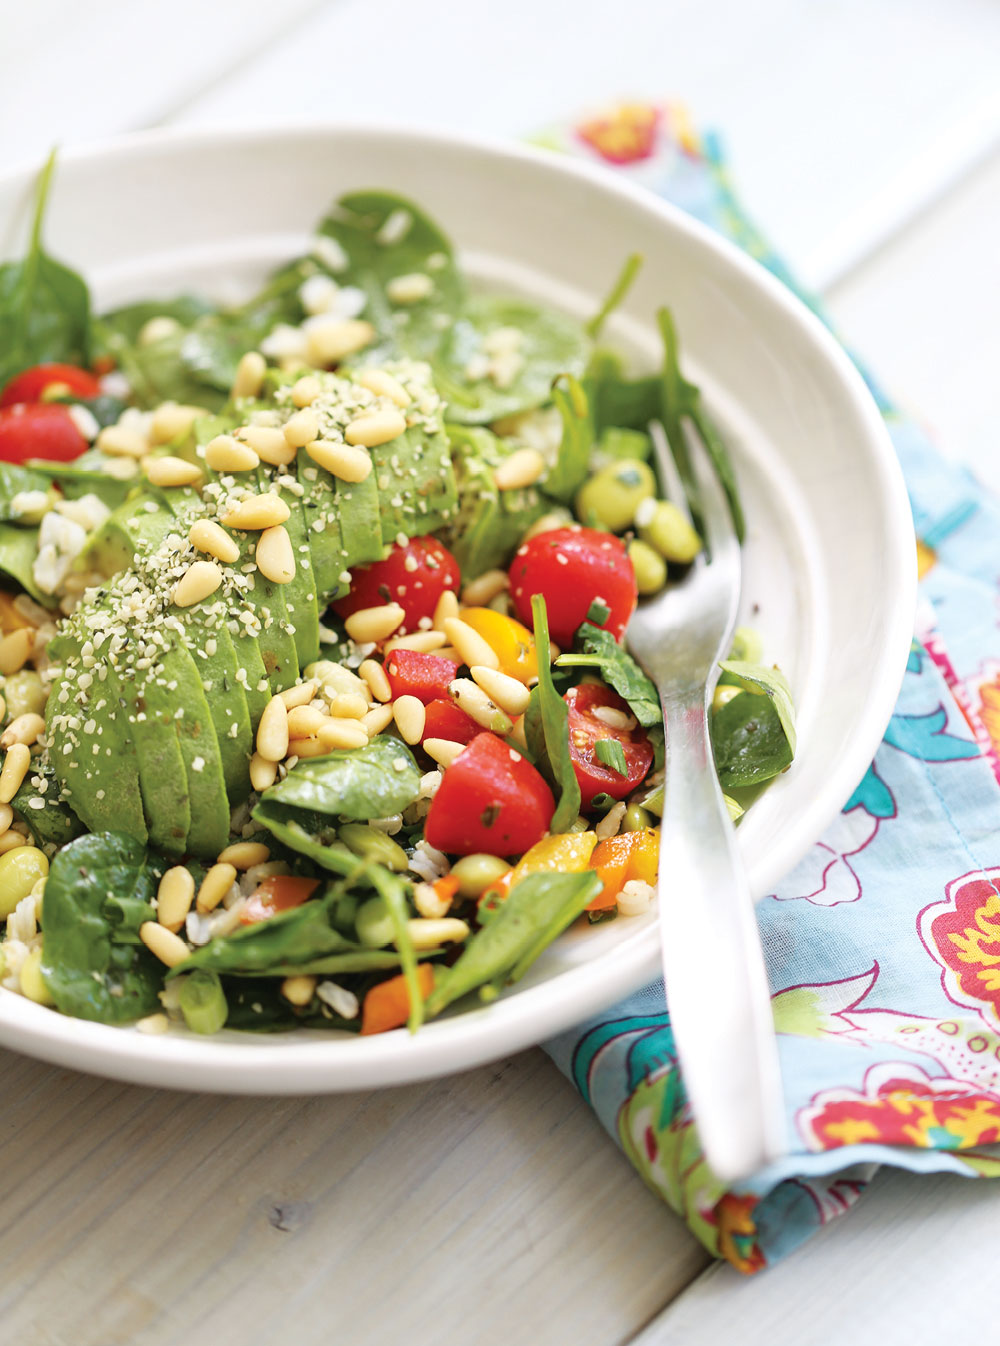 Ella-Leche-Pure-Ella-AVOCADO-Spinach-Salad-4